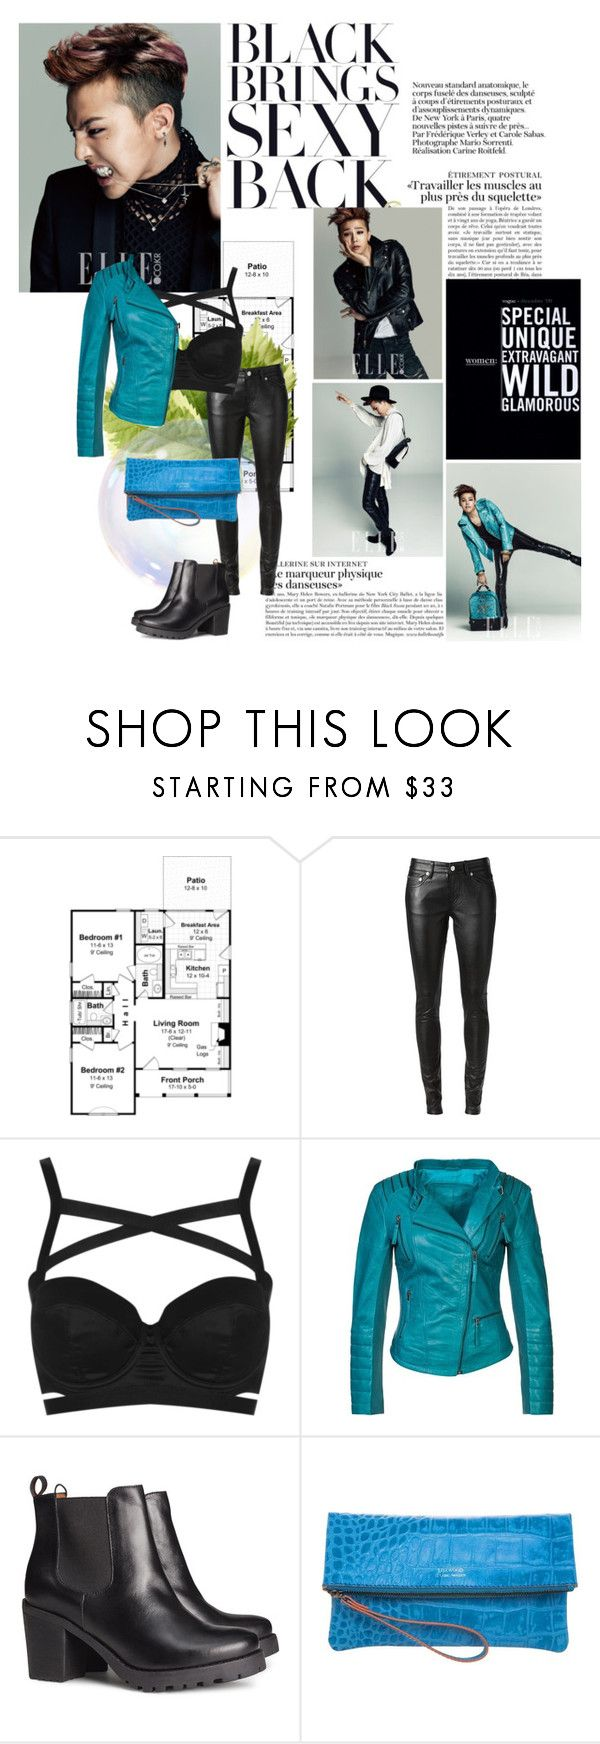 """""""I Am #210 Kwon Jiyong"""" by fyemiho ❤ liked on Polyvore featuring J.ESTINA, Yves Saint Laurent, Topshop, Cigno Nero, H&M and Loxwood"""